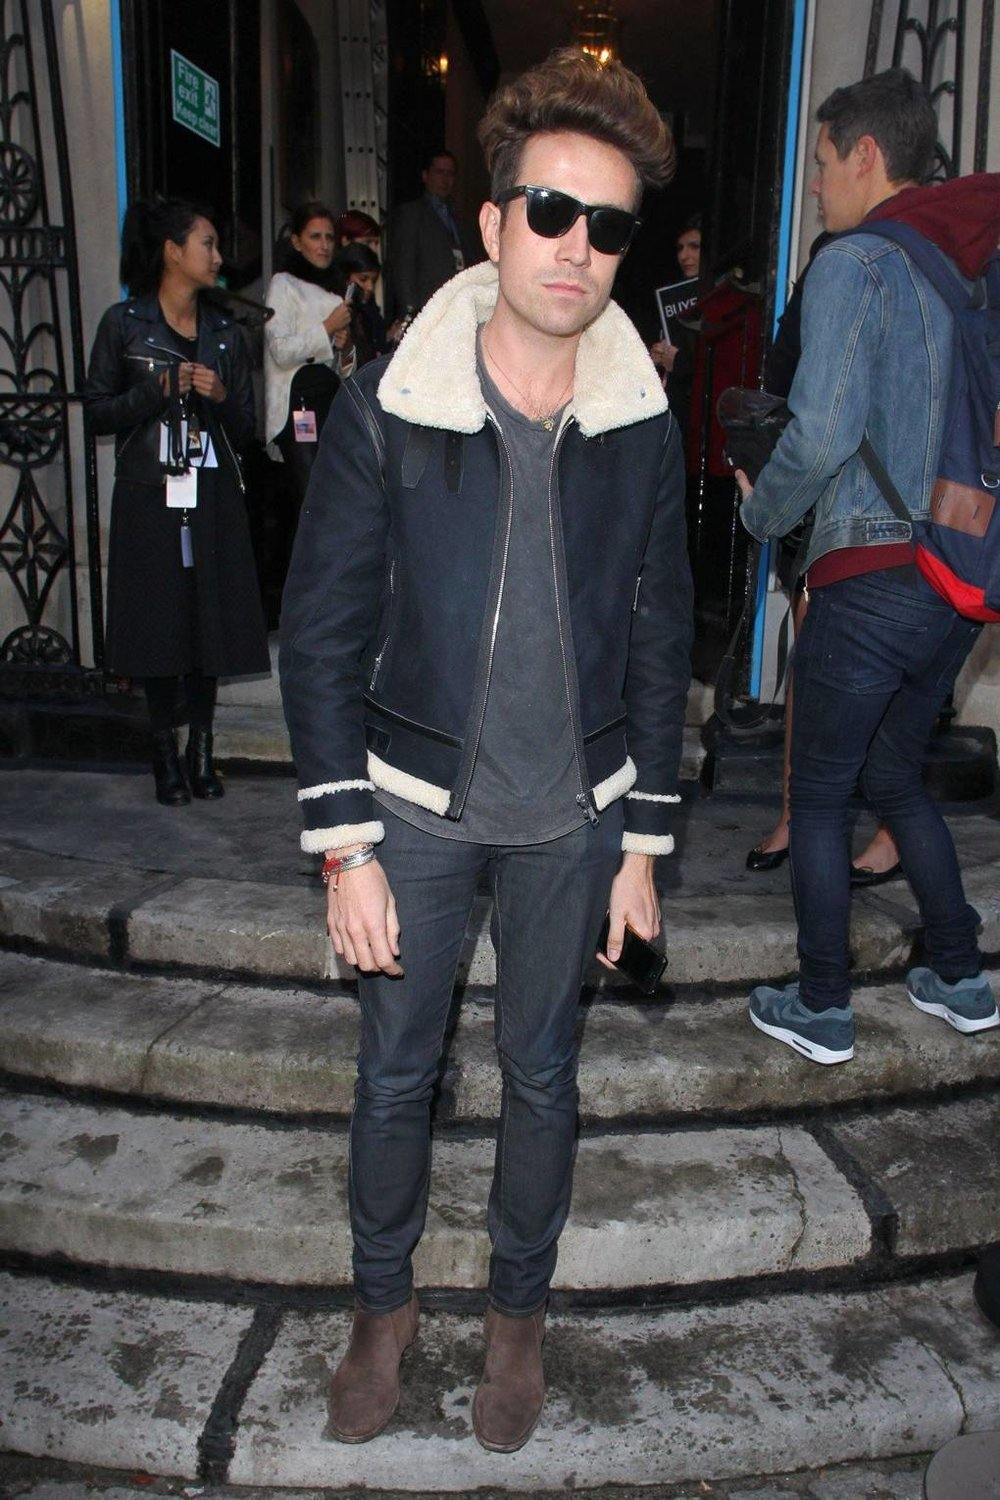 Nick-Grimshaw-05-GQ_20Dec13_rex_b.jpg